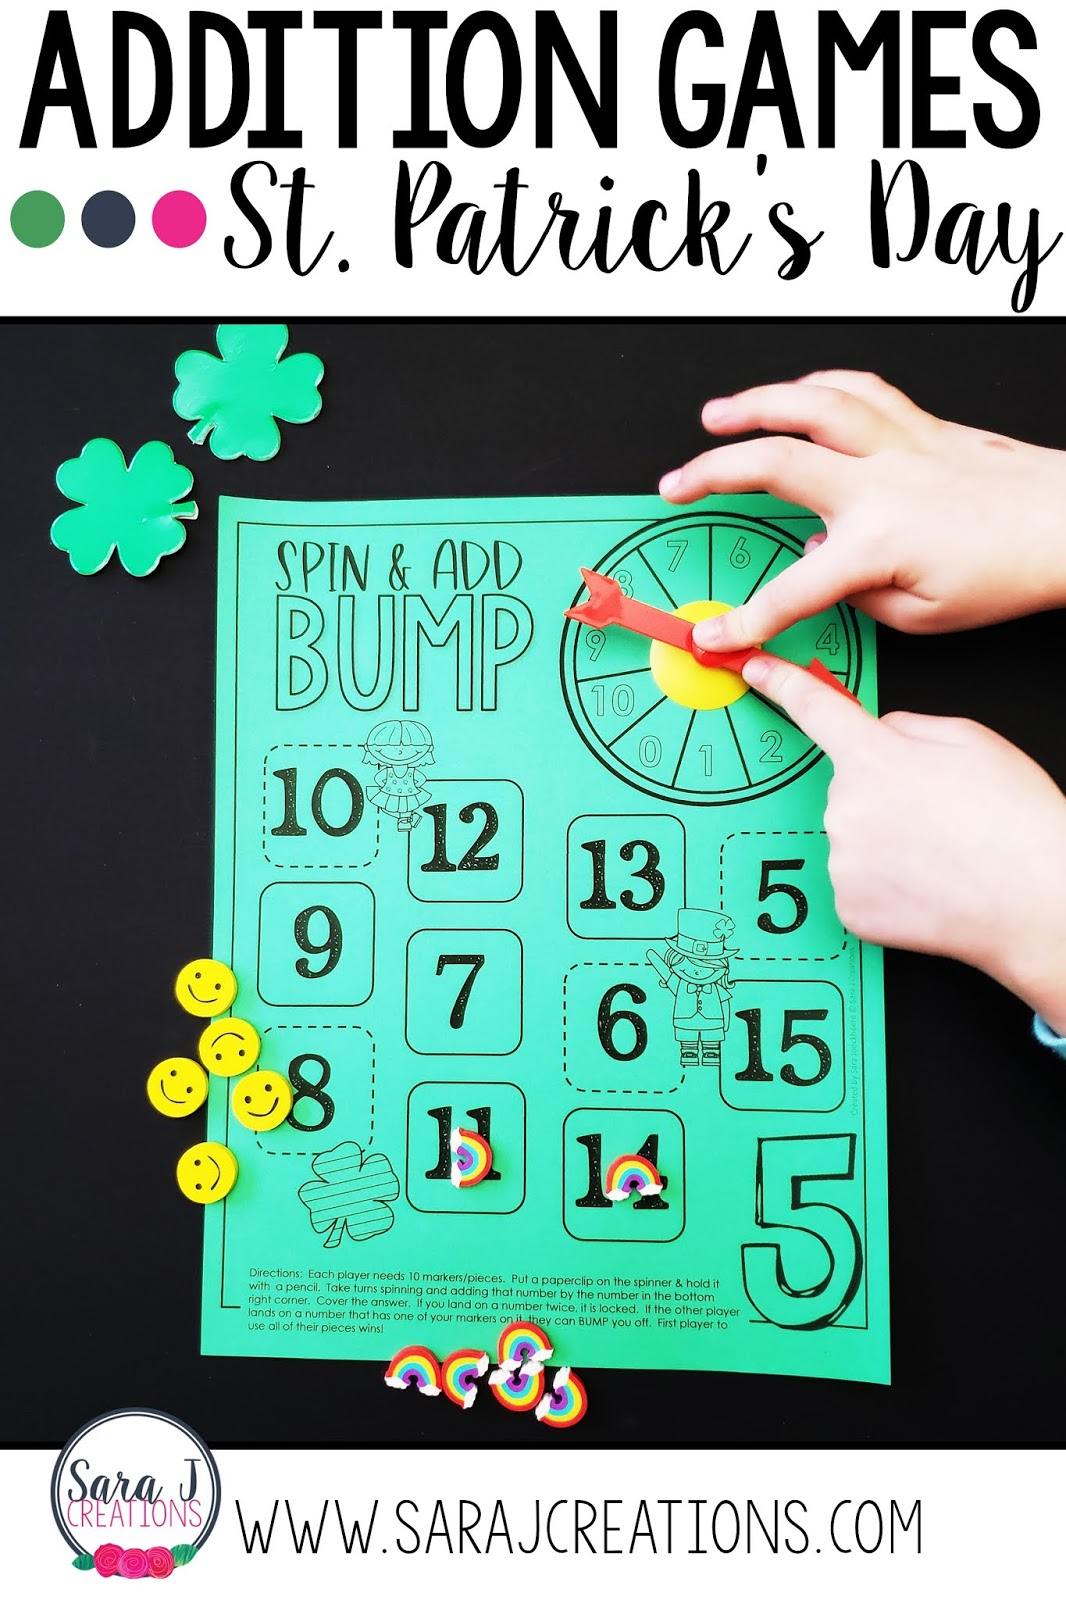 Practice addition facts with these fun St. Patrick's Day math games for kids. Perfect for kindergarten, first grade or second grade as students work on fact fluency.